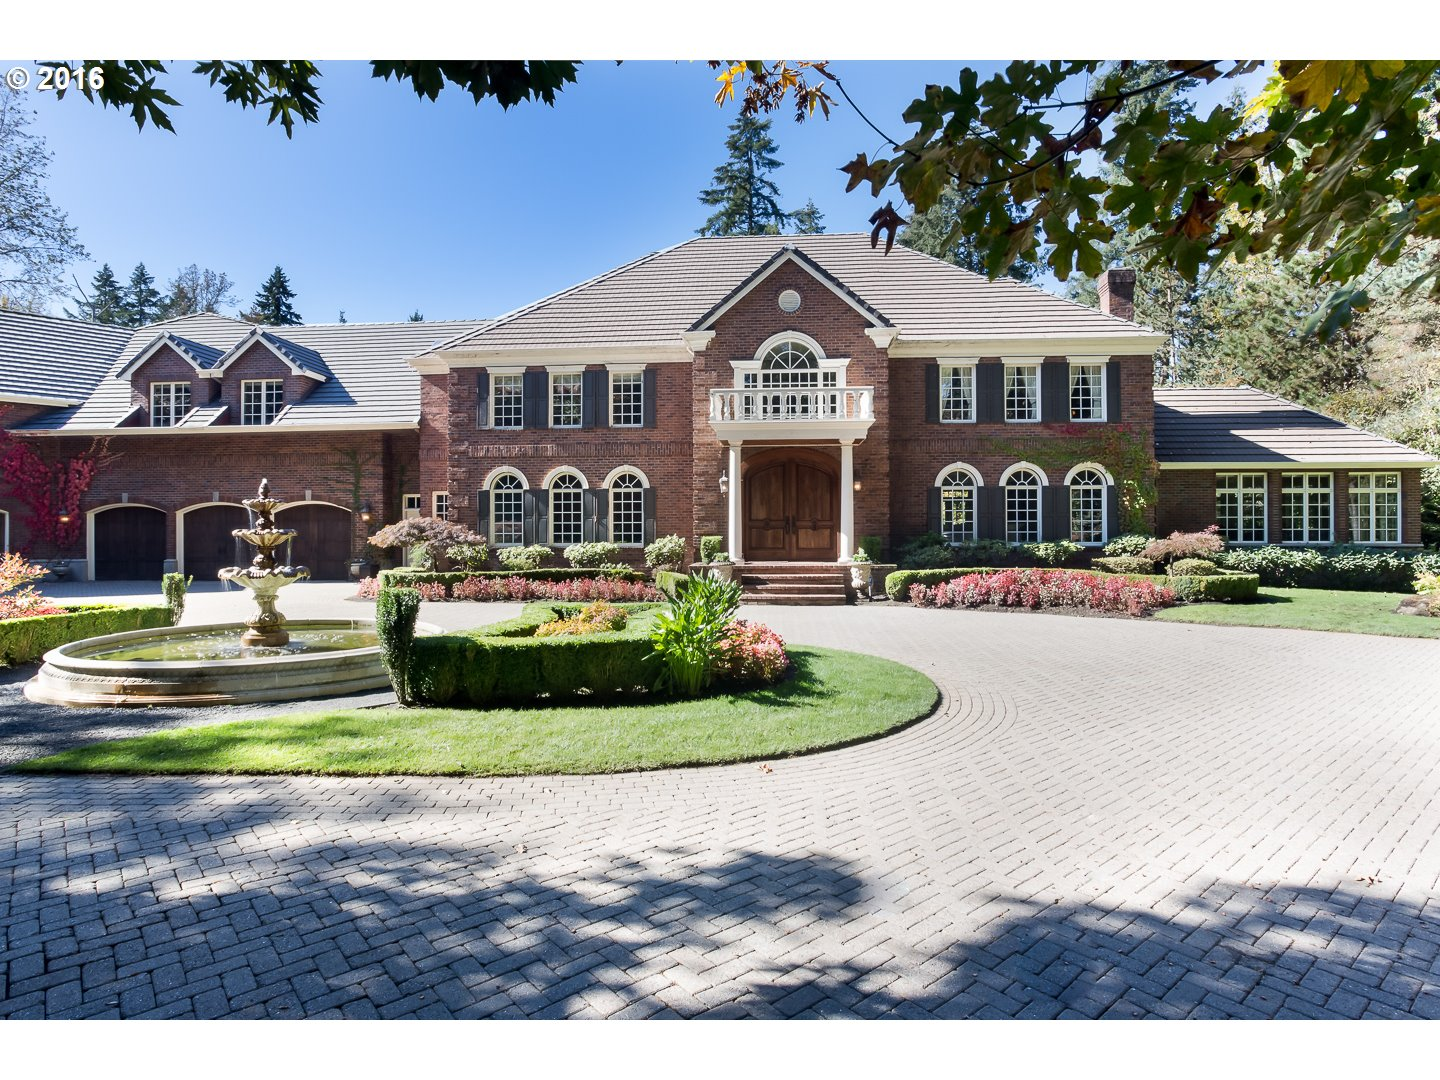 4140 CANAL RD, Lake Oswego, OR 97034